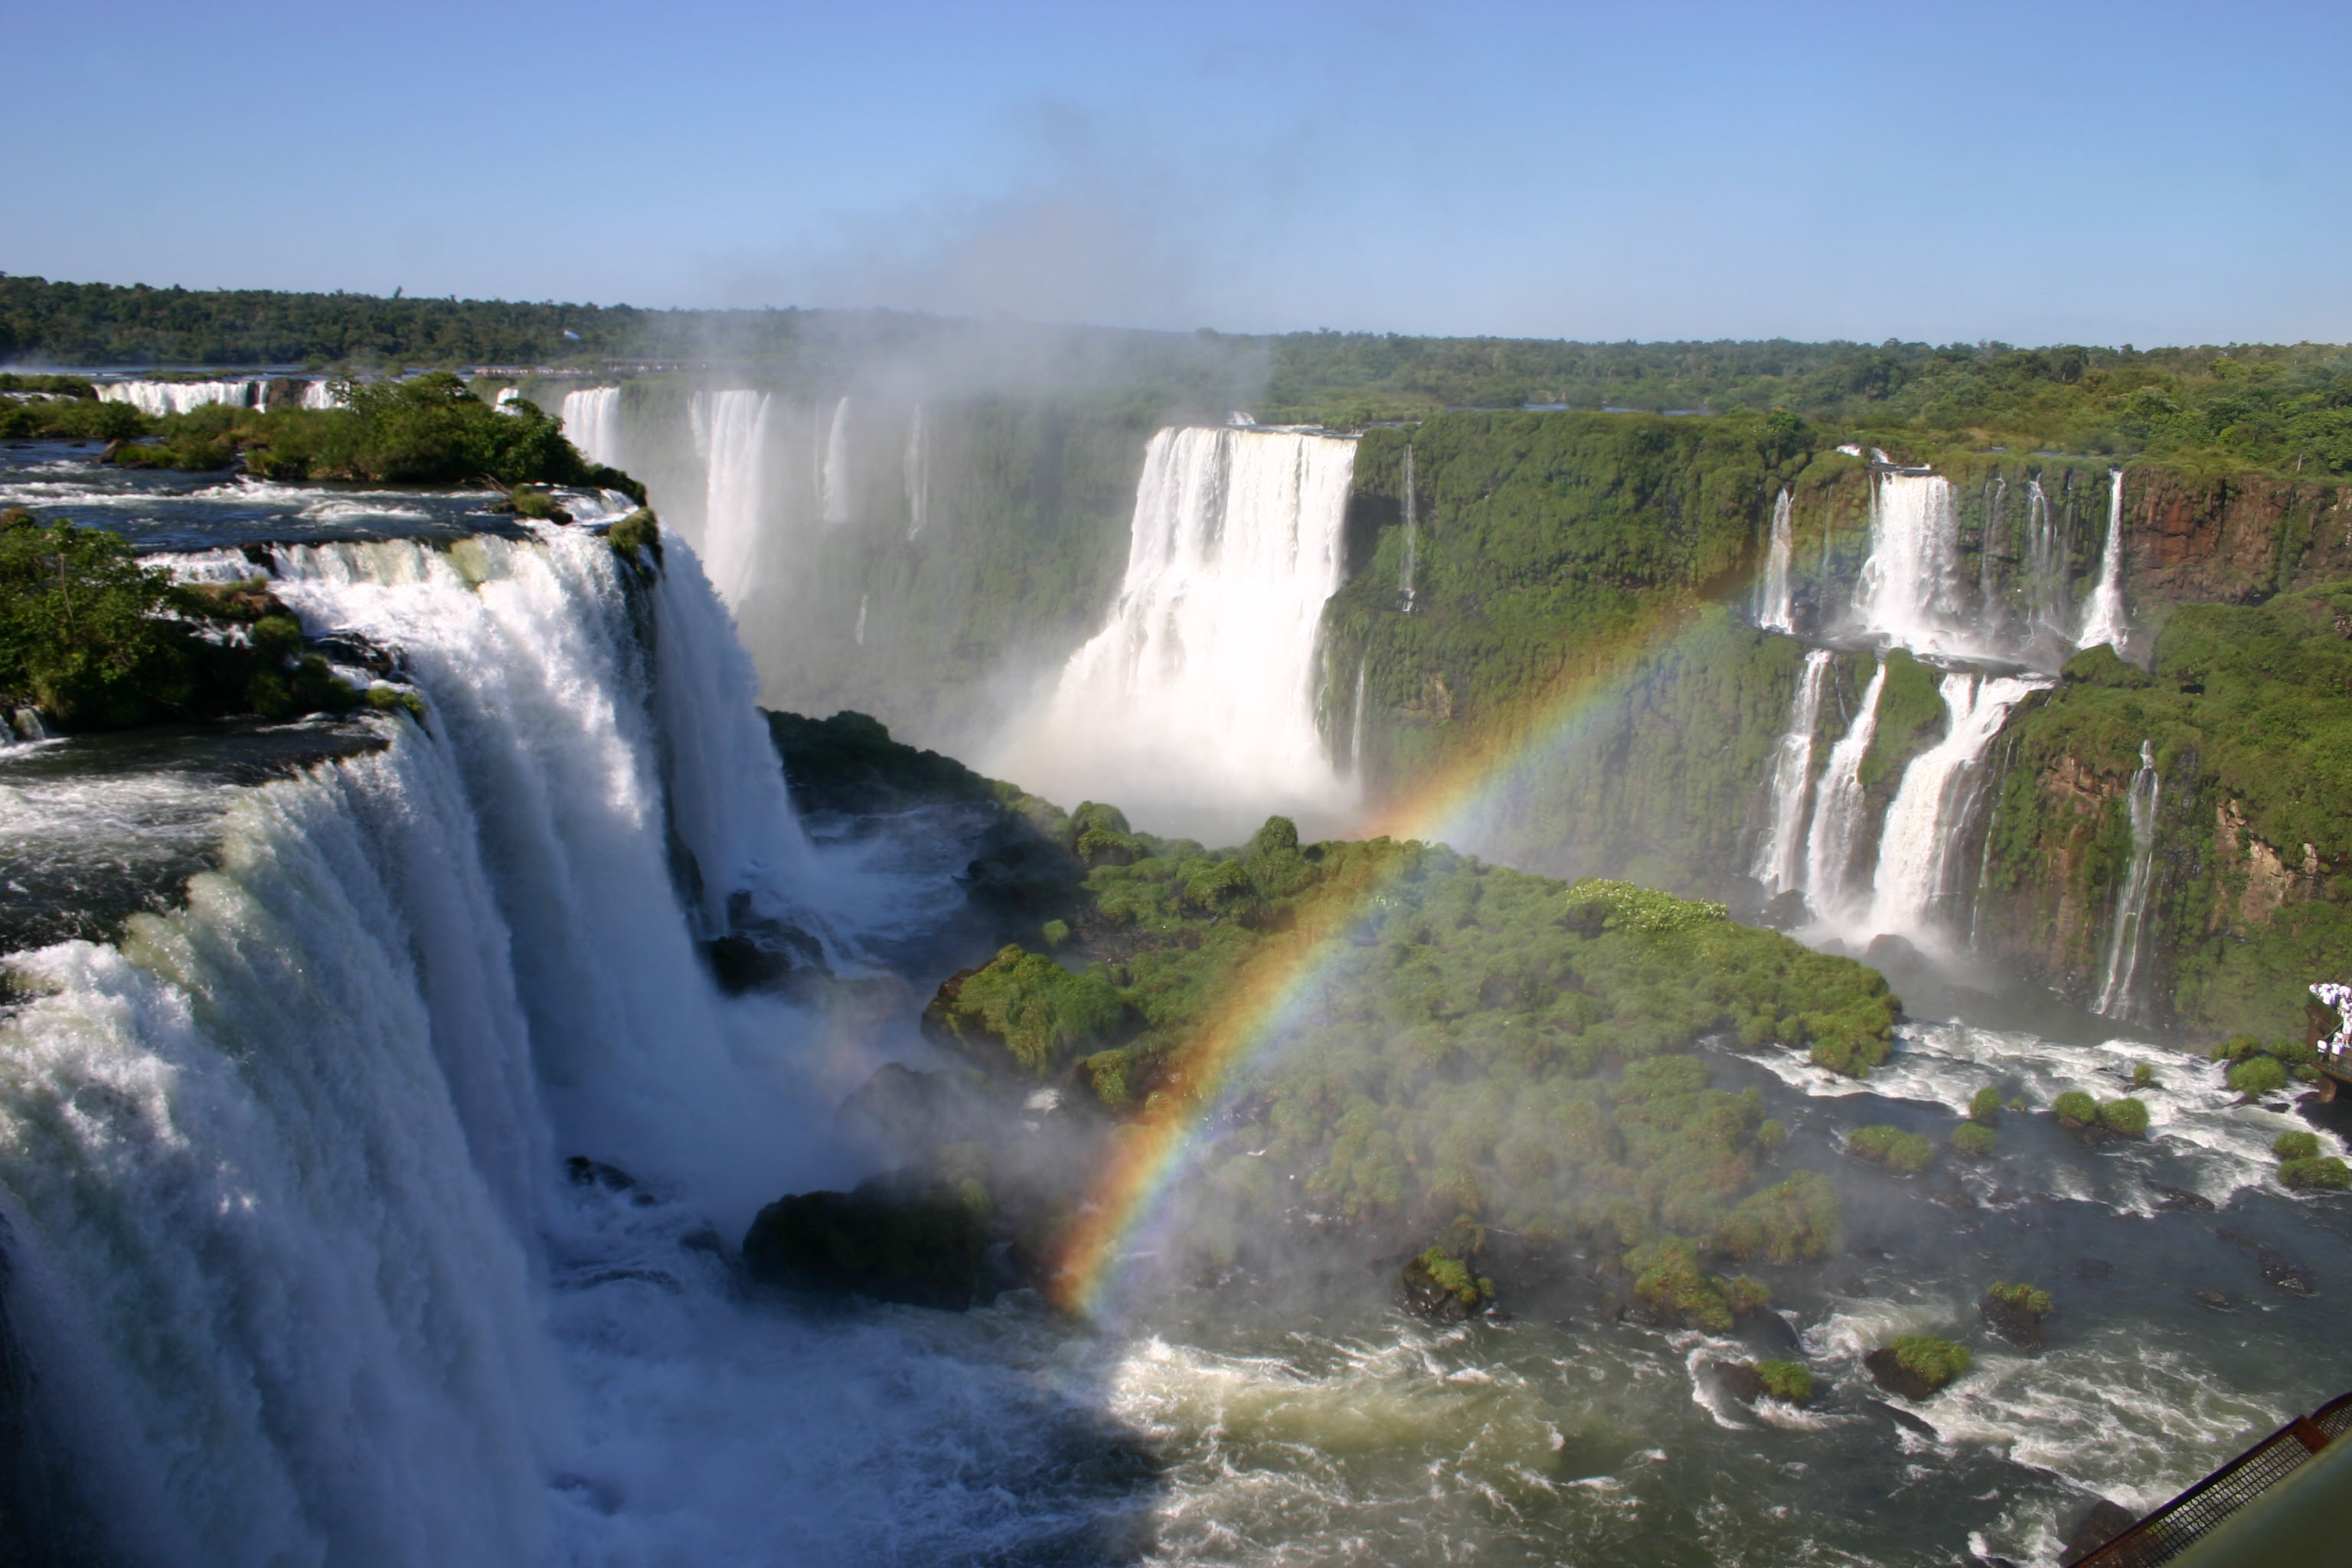 View of a rainbow at the bottom of Iguazu Falls.